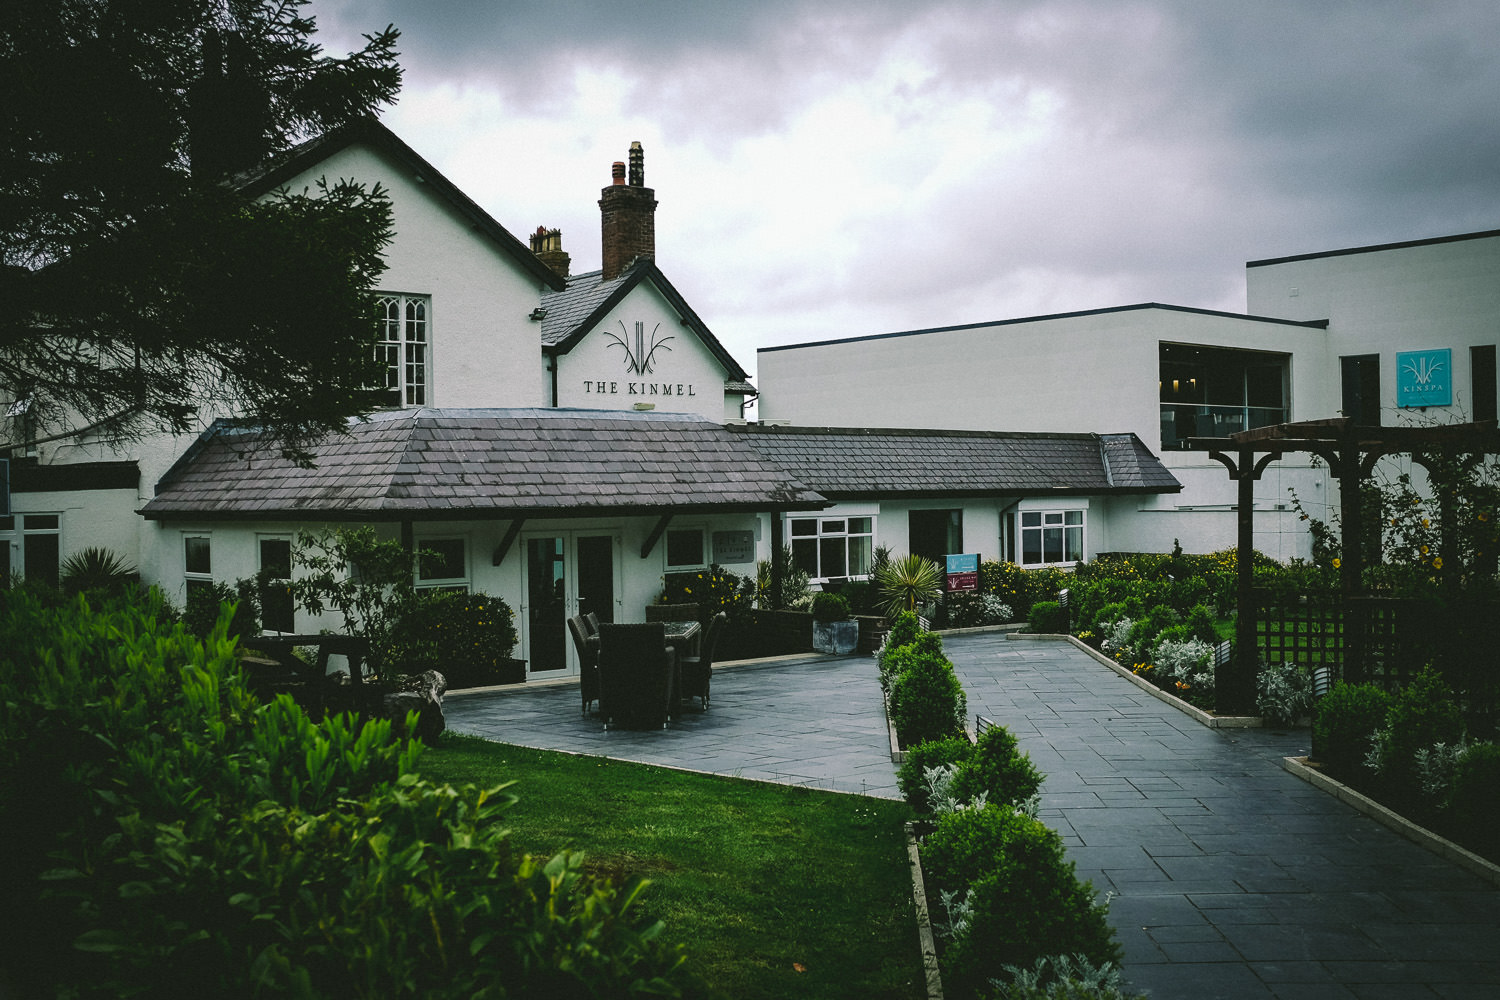 The Kinmel Hotel wedding venue and spa